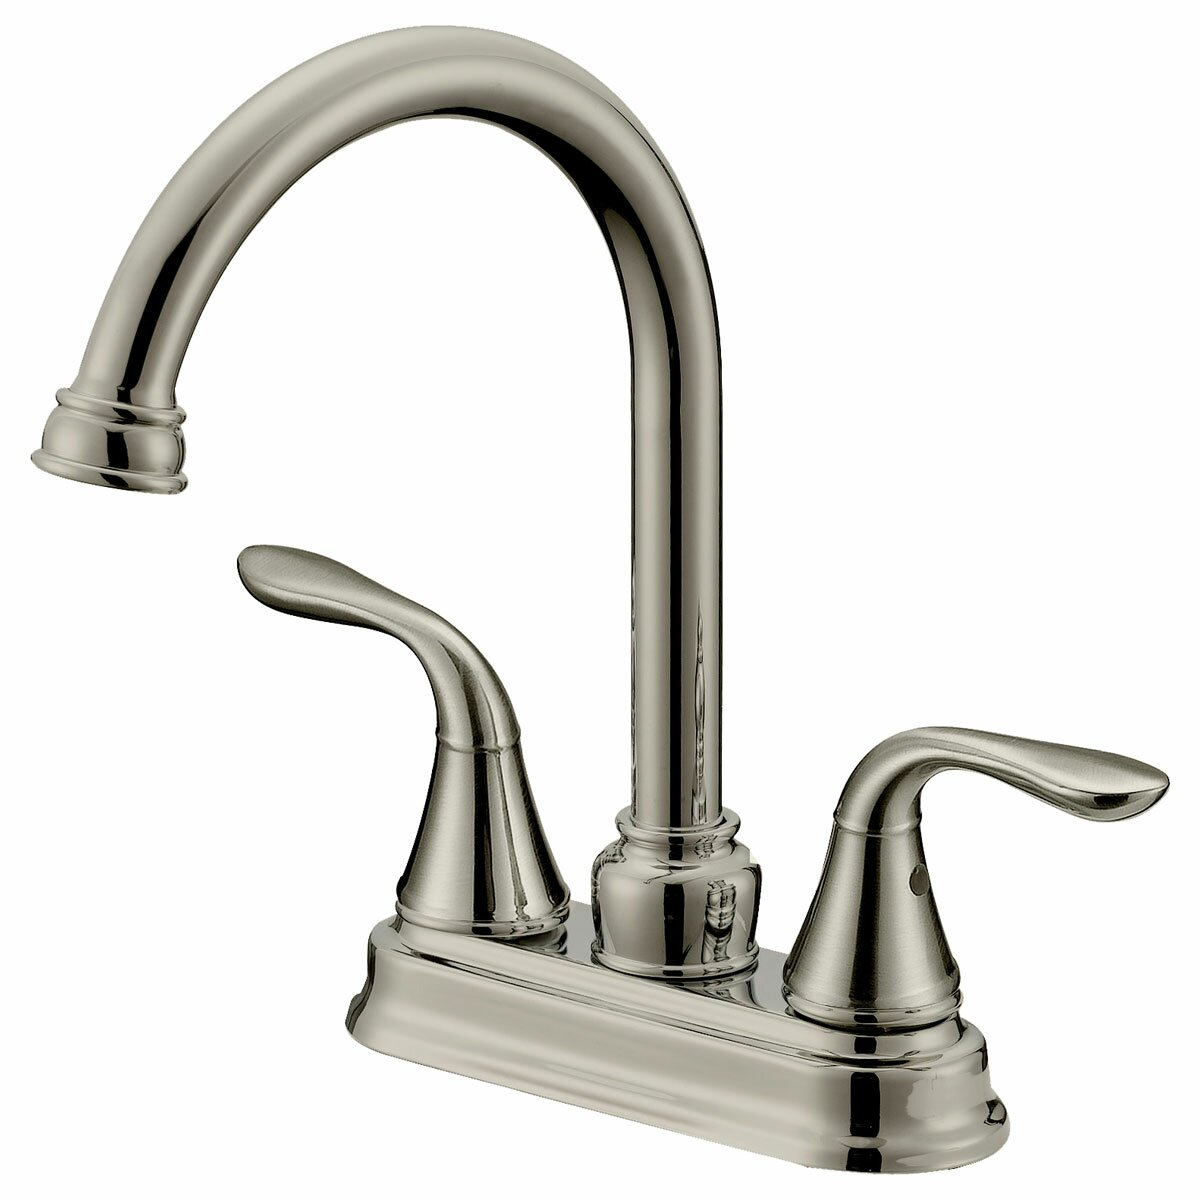 New  Bathroom Faucets Reviews 42 With Riobel Bathroom Faucets Reviews